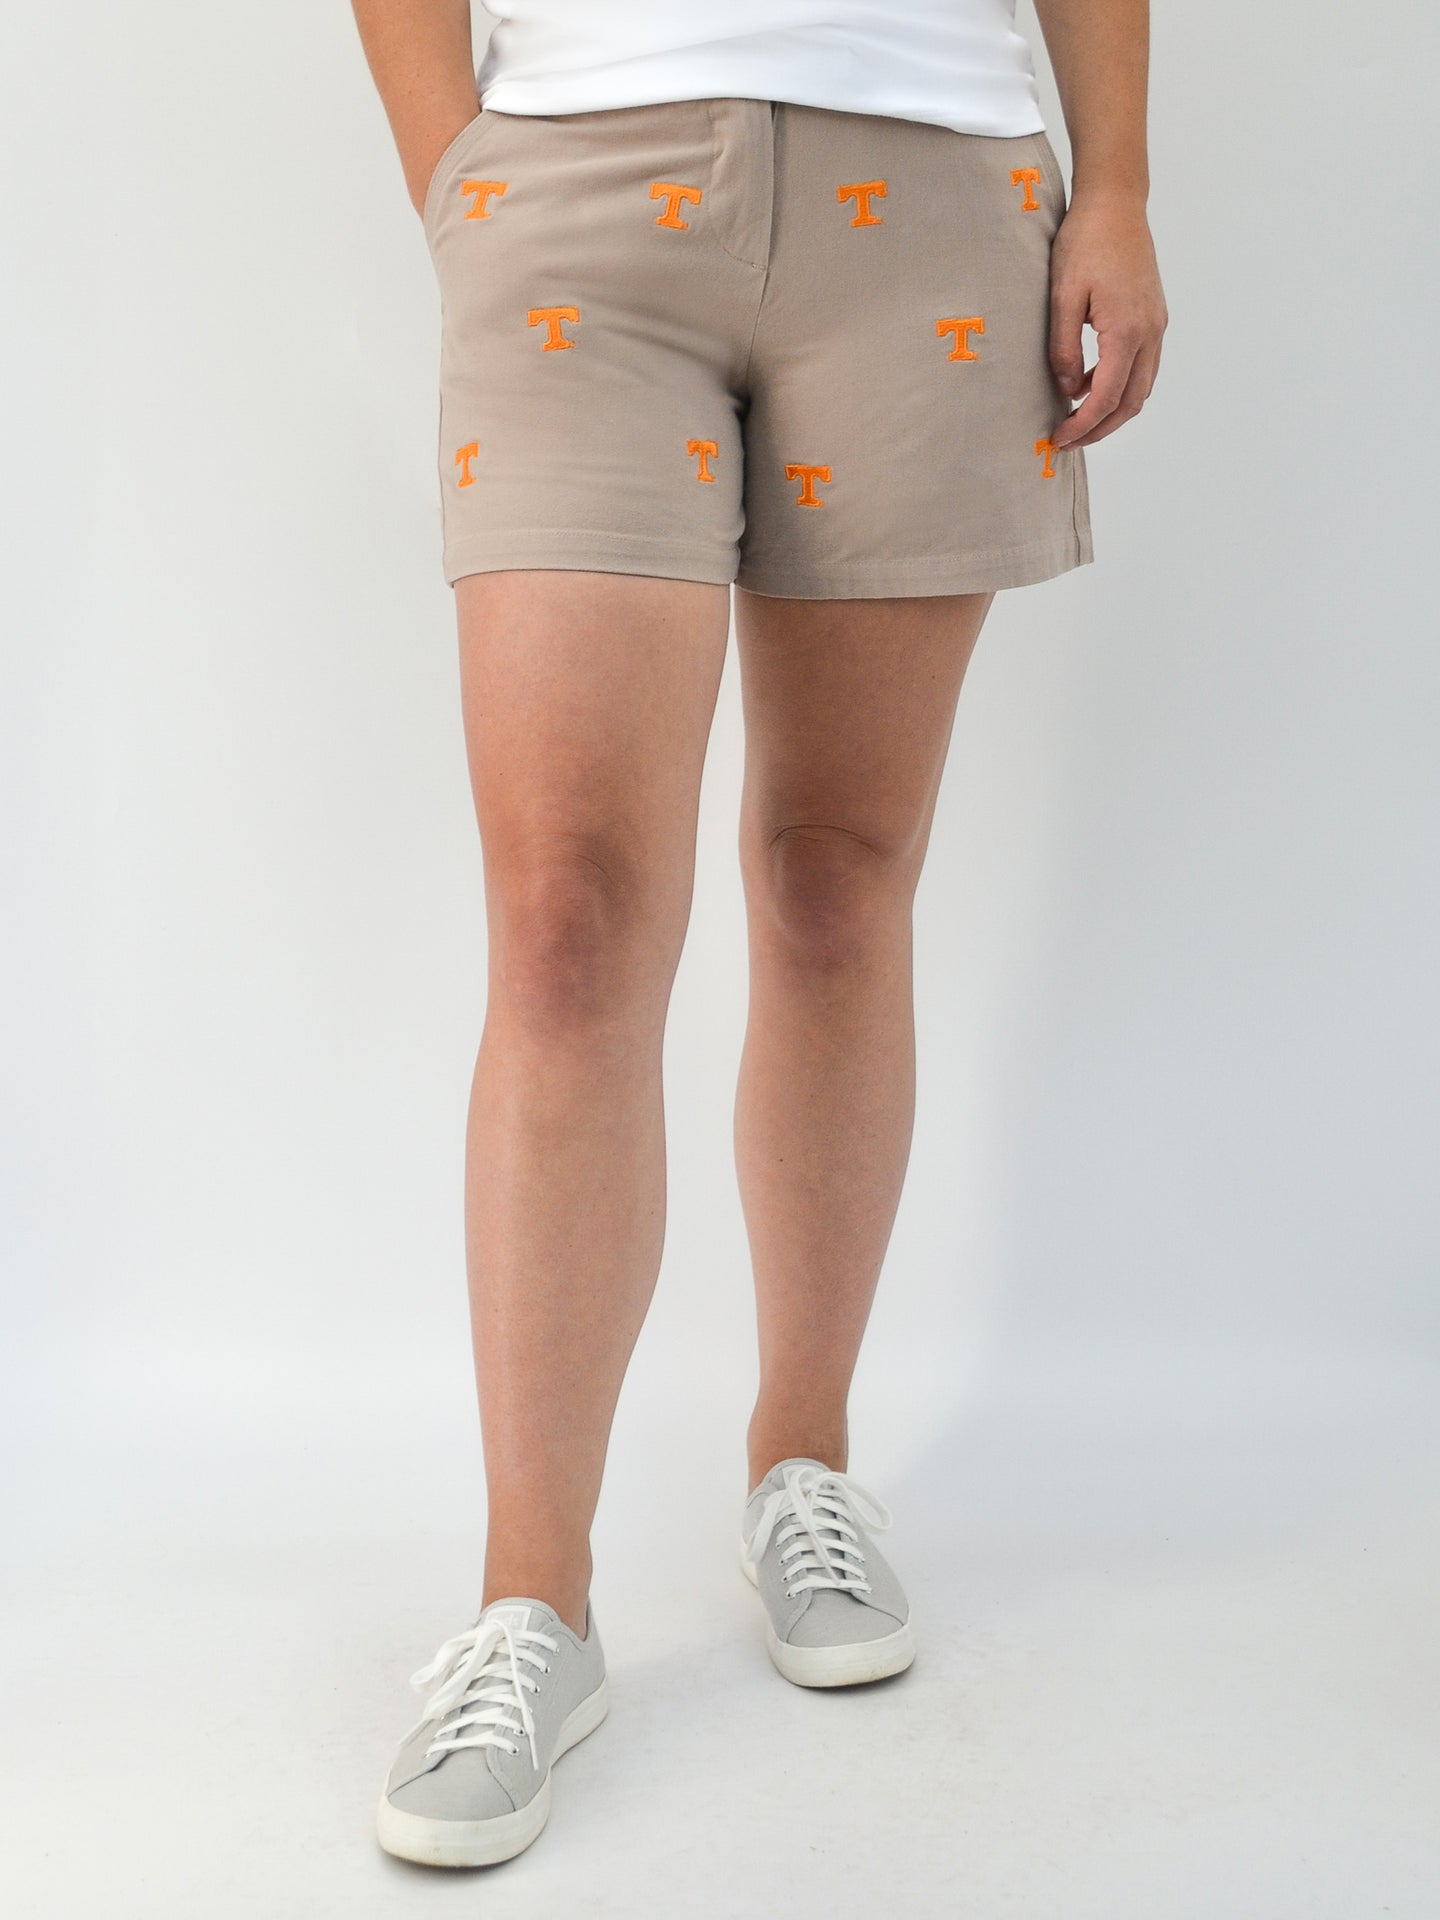 Tennessee Khaki Sports Short